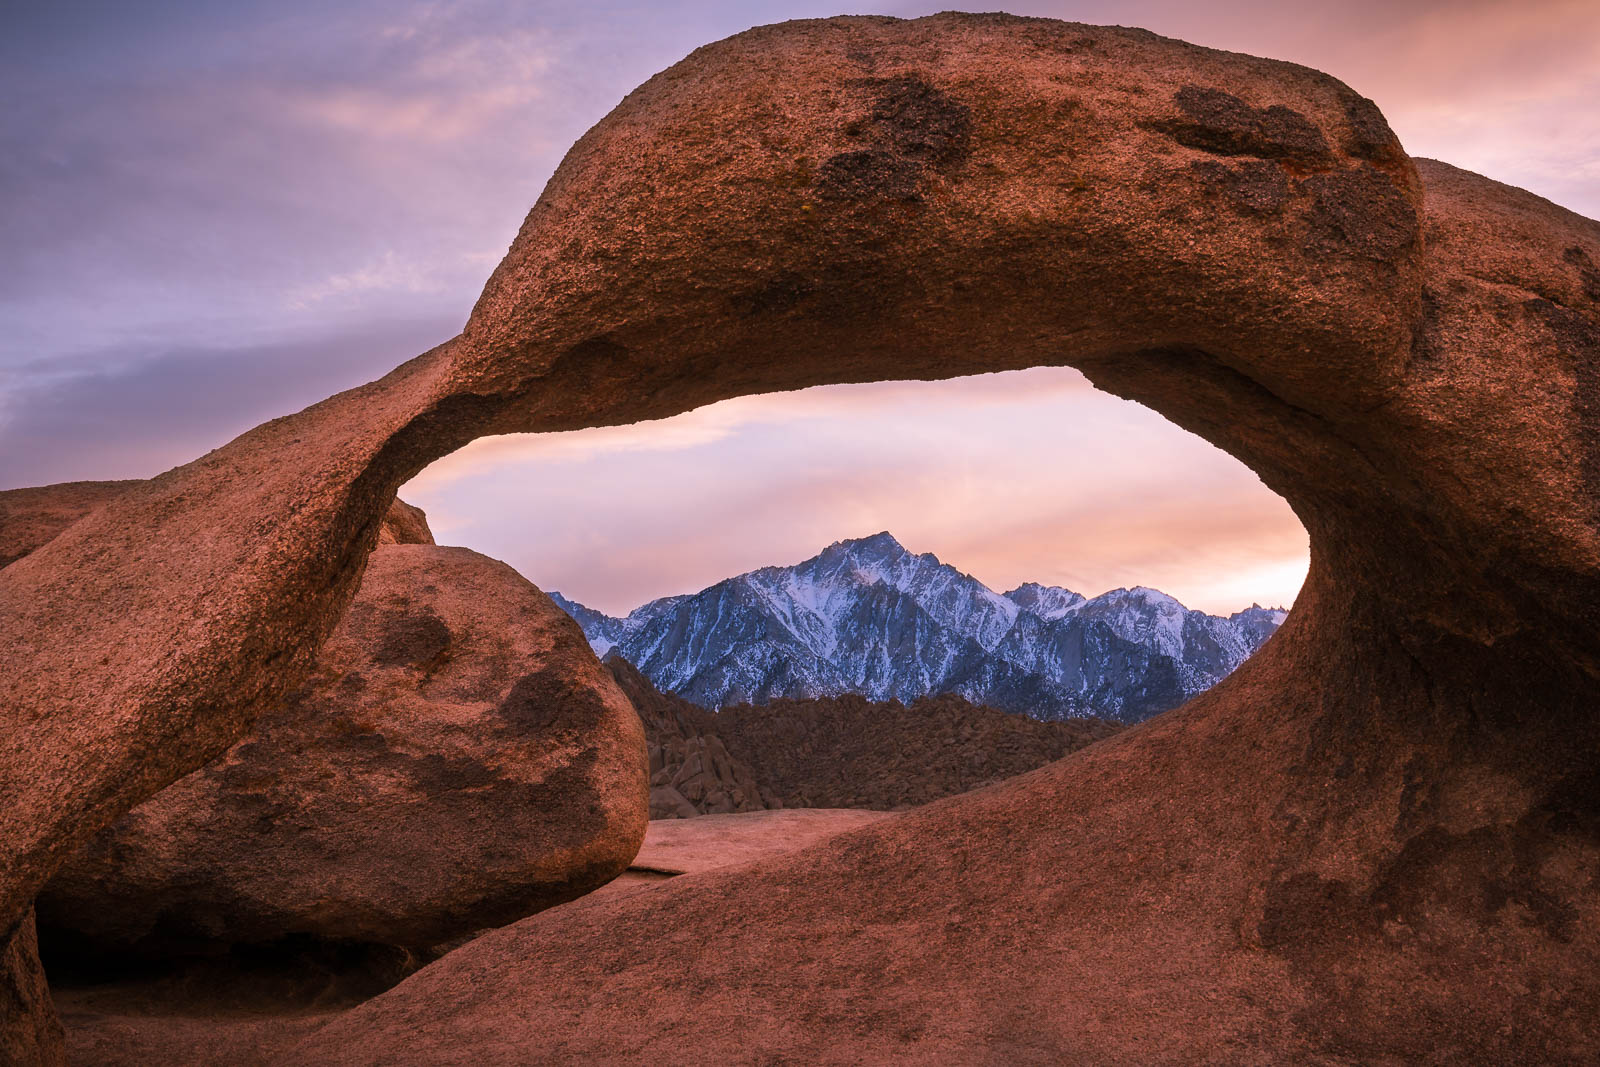 Mobius Arch, Alabama Hills, Sierra Nevada, Mt. Whitney, California, sunset, photo